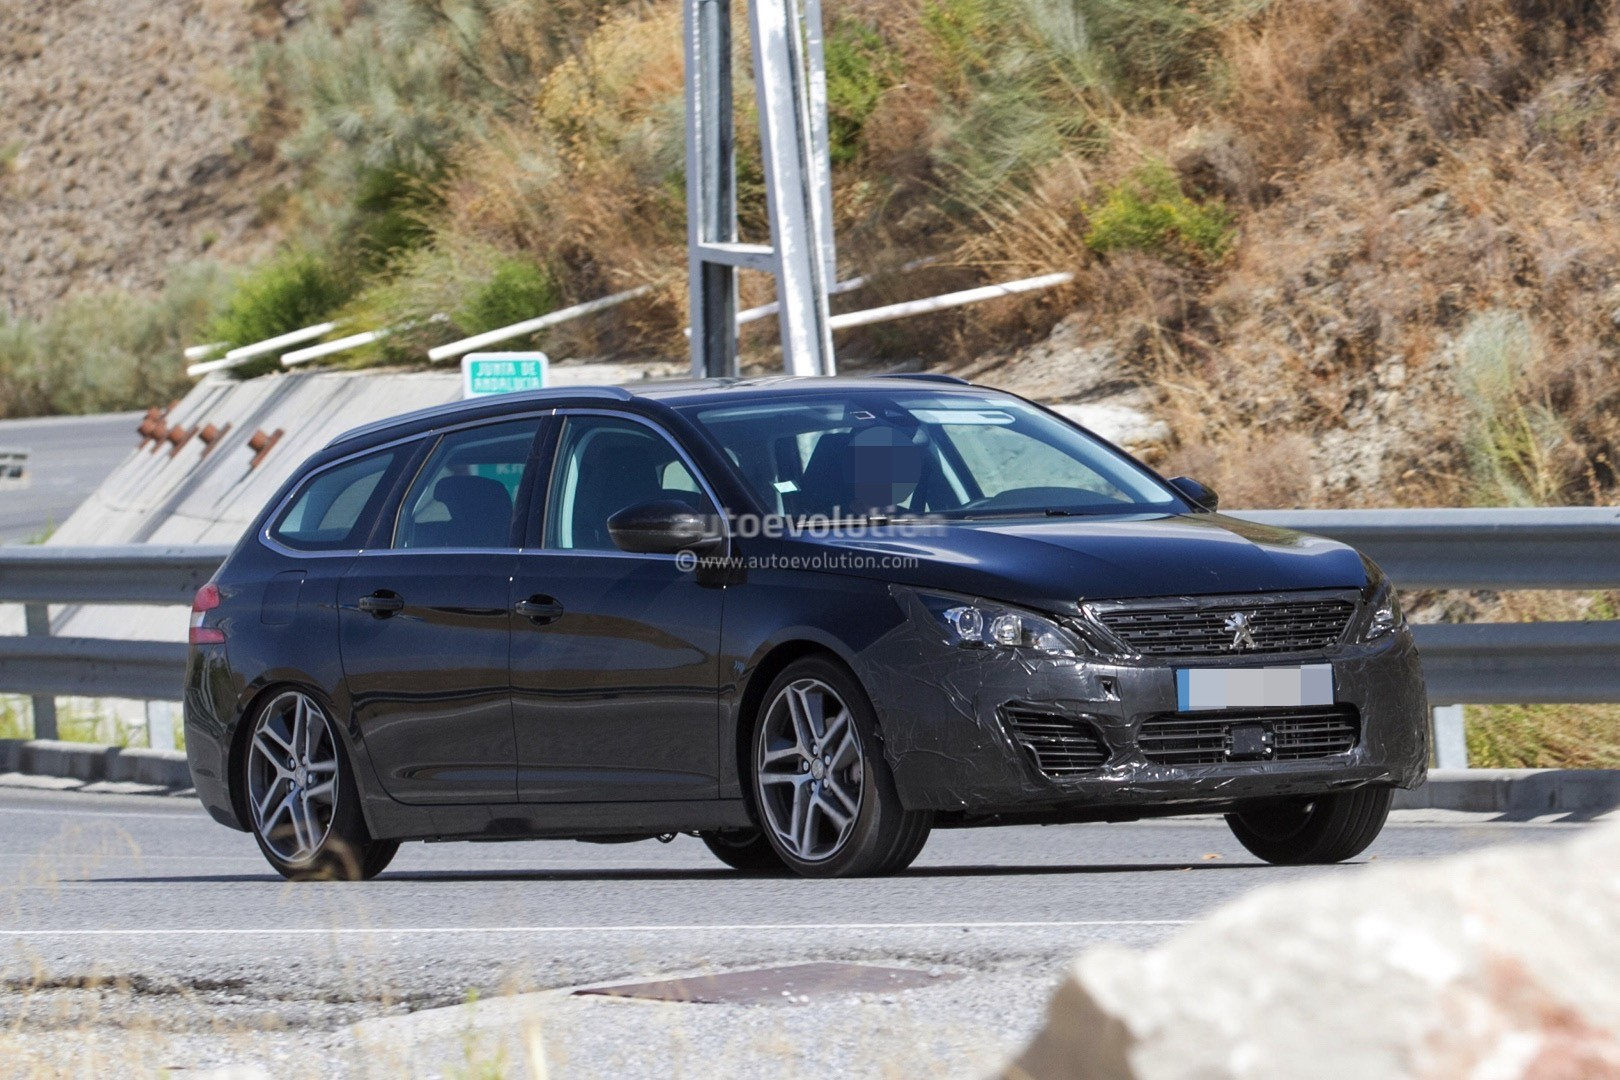 2017 - [Peugeot] 308 II Restylée - Page 11 Peugeot-prepares-to-facelift-308-model-lineup-for-2017_6